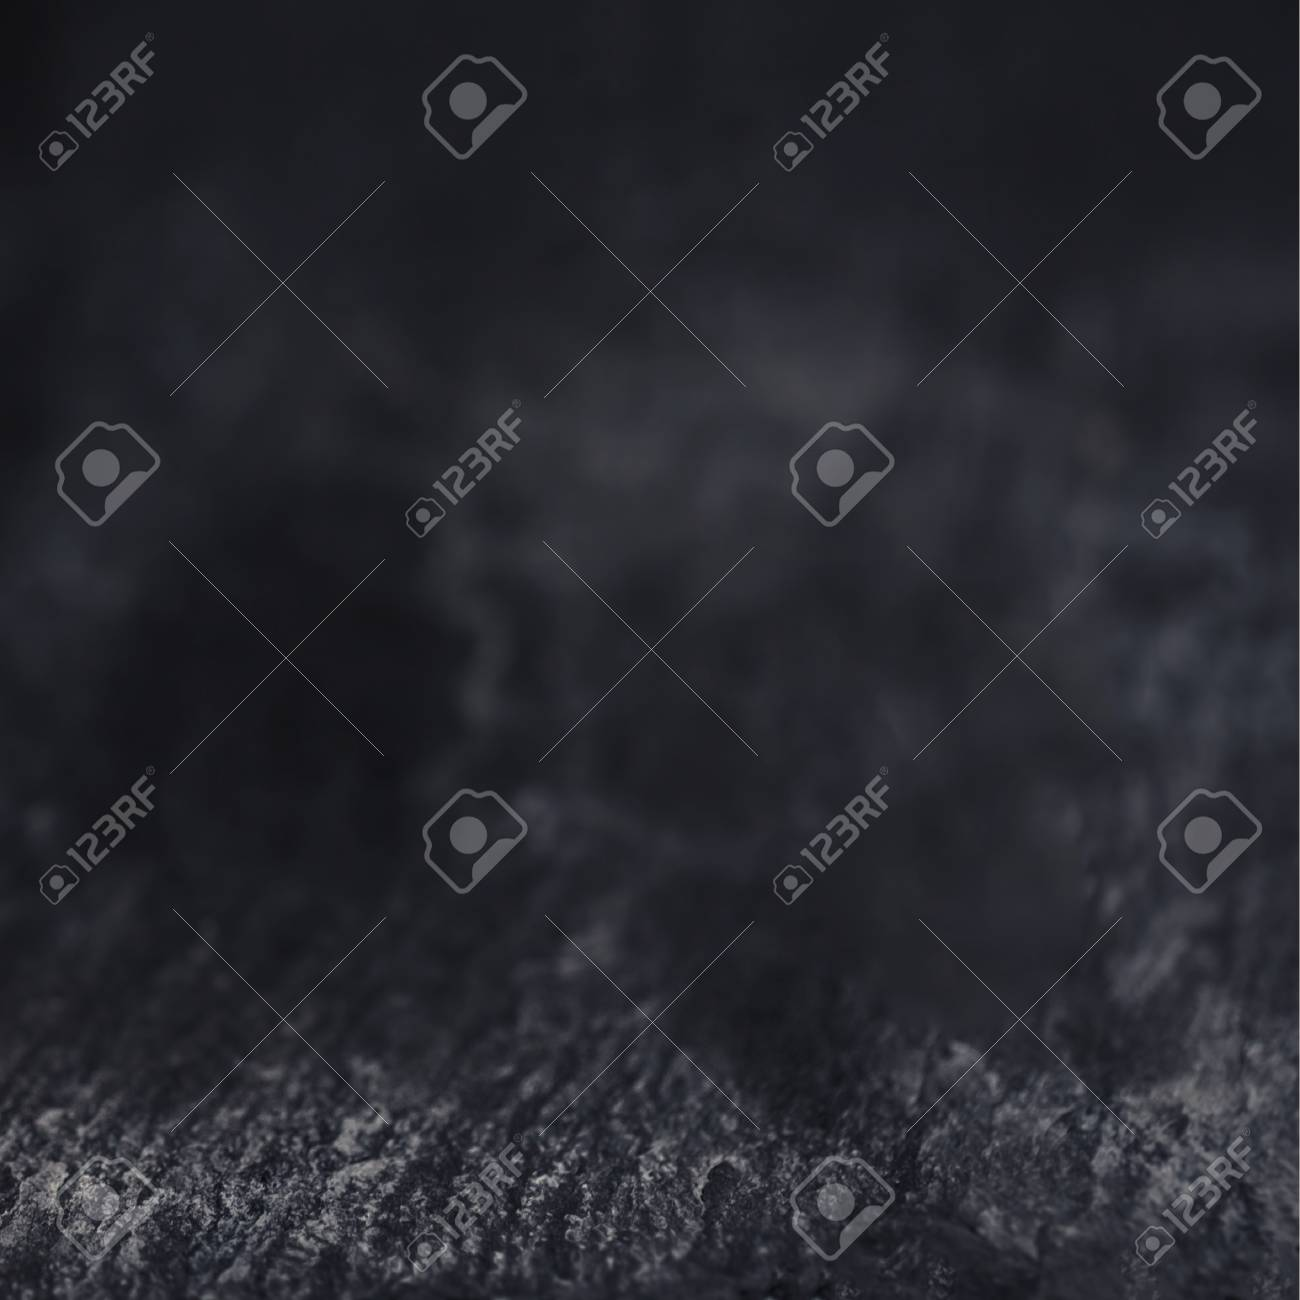 Dark Grunge Textured Wall Closeup Black Background